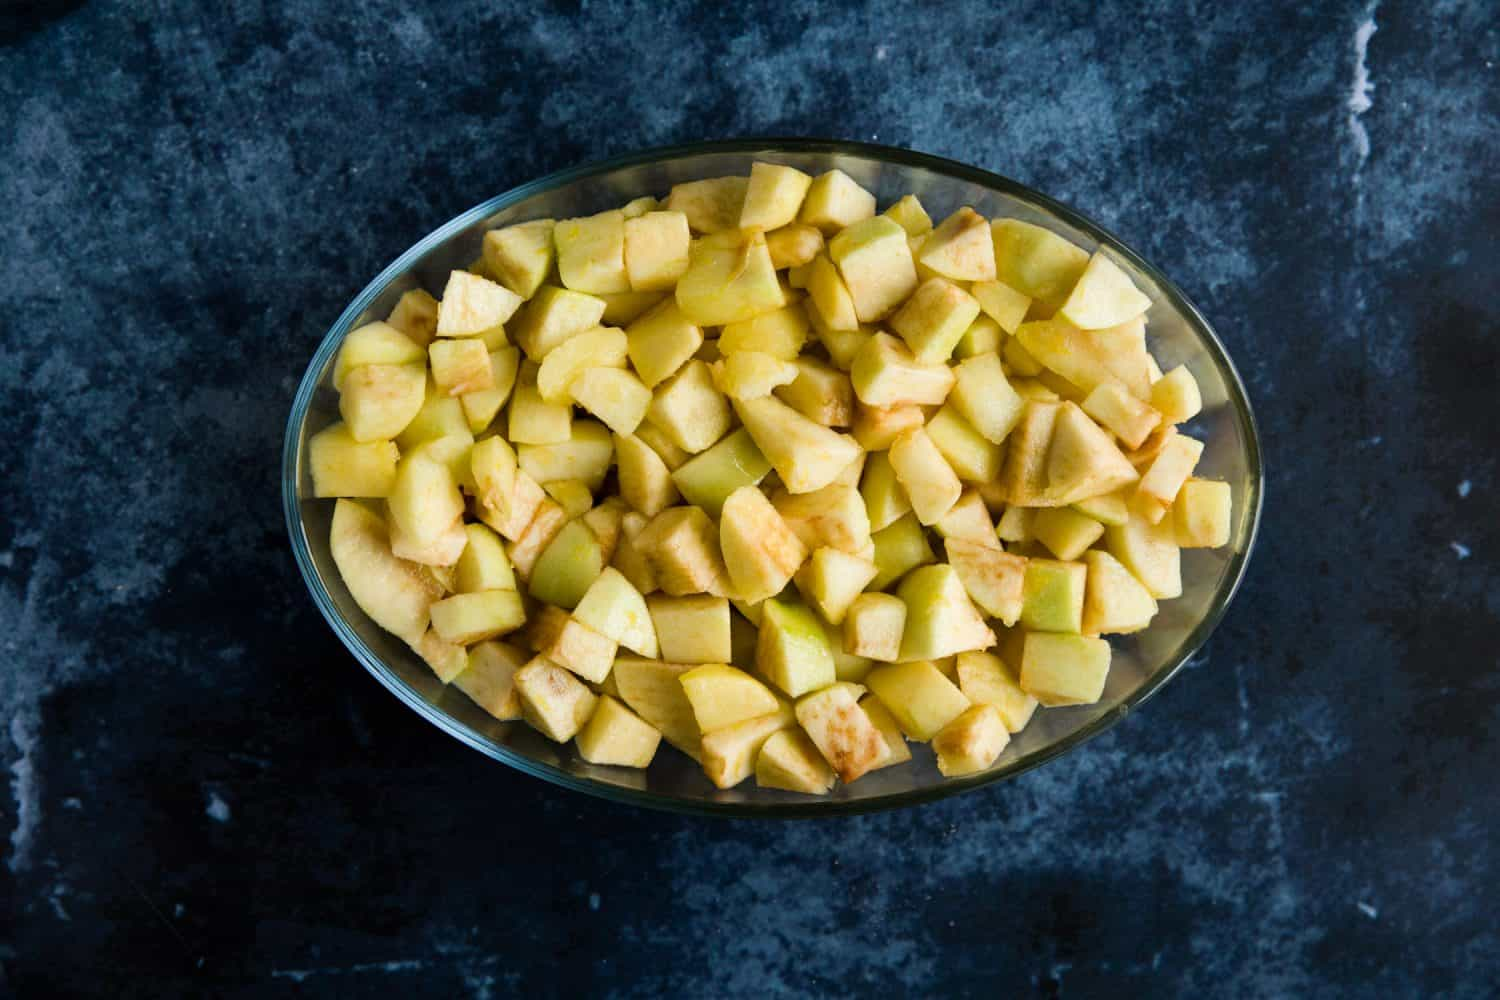 A pyrex dish with cut up bramley and golden delcious apples inside.